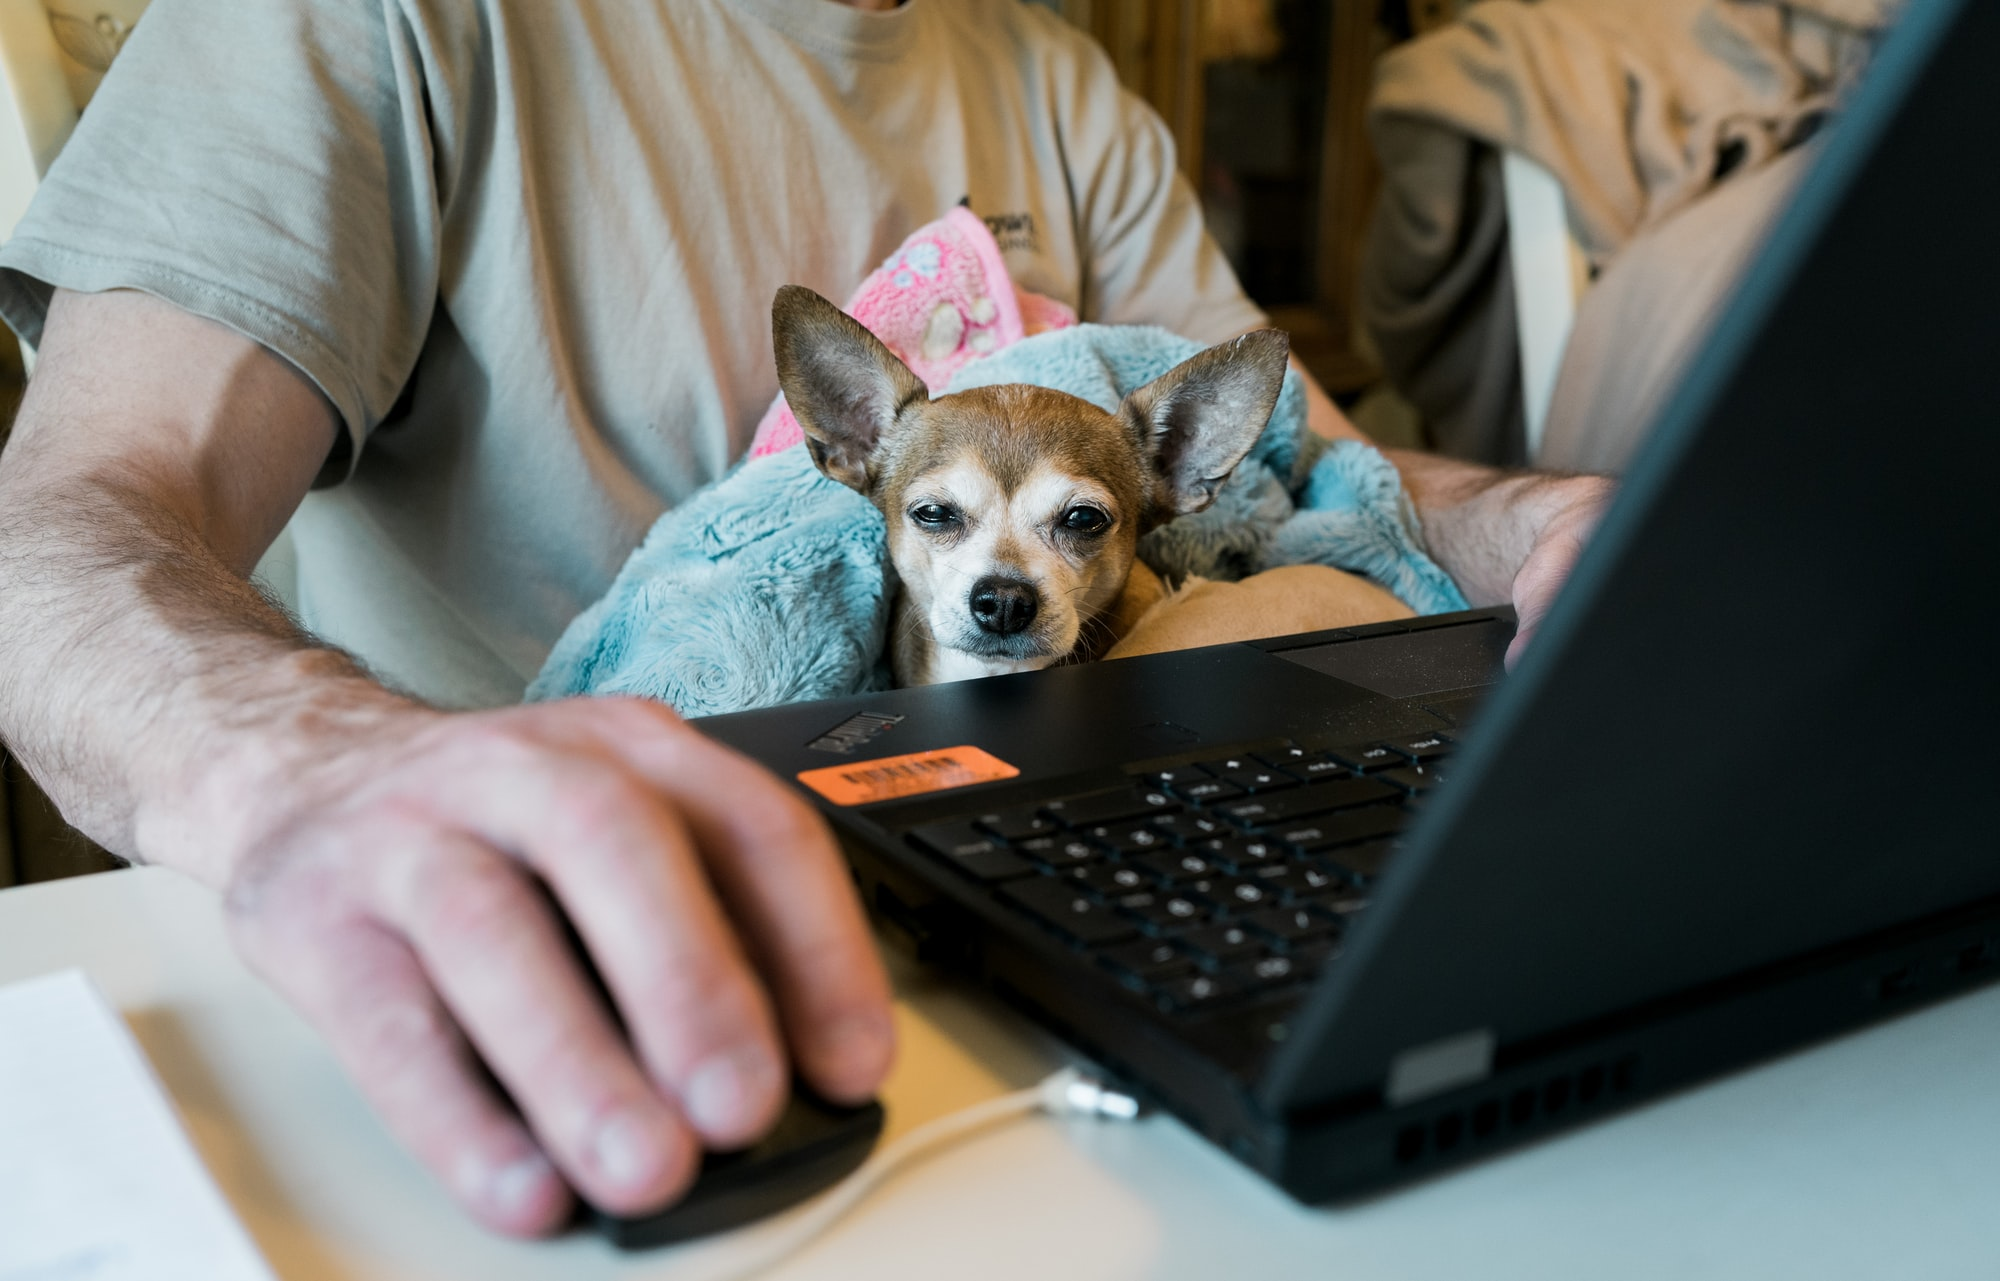 The Micromanager: Working from home under the scrutinizing eye of the watchdog